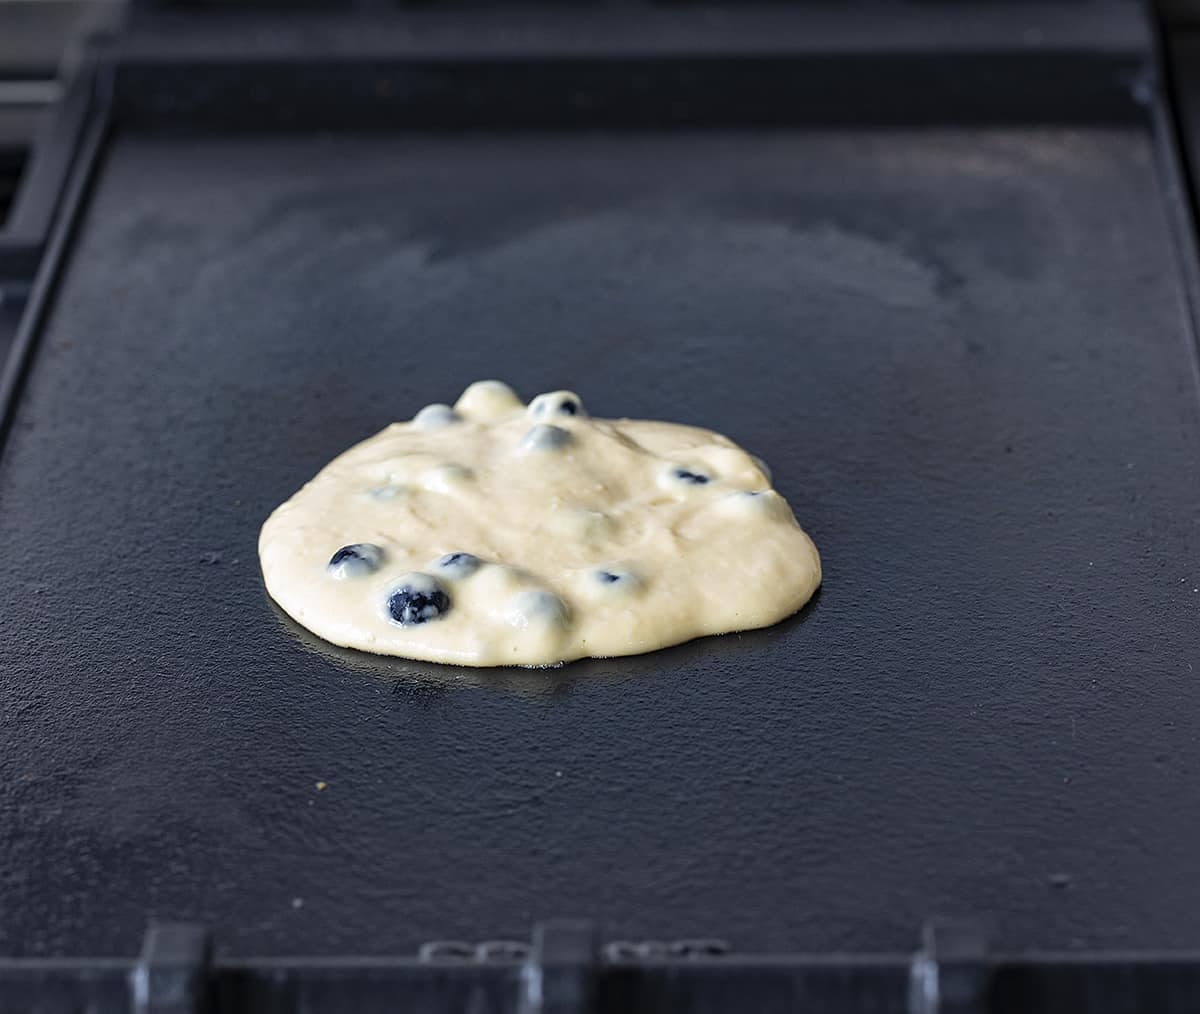 Raw Blueberry Sourdough Pancake Batter on Hot Griddle